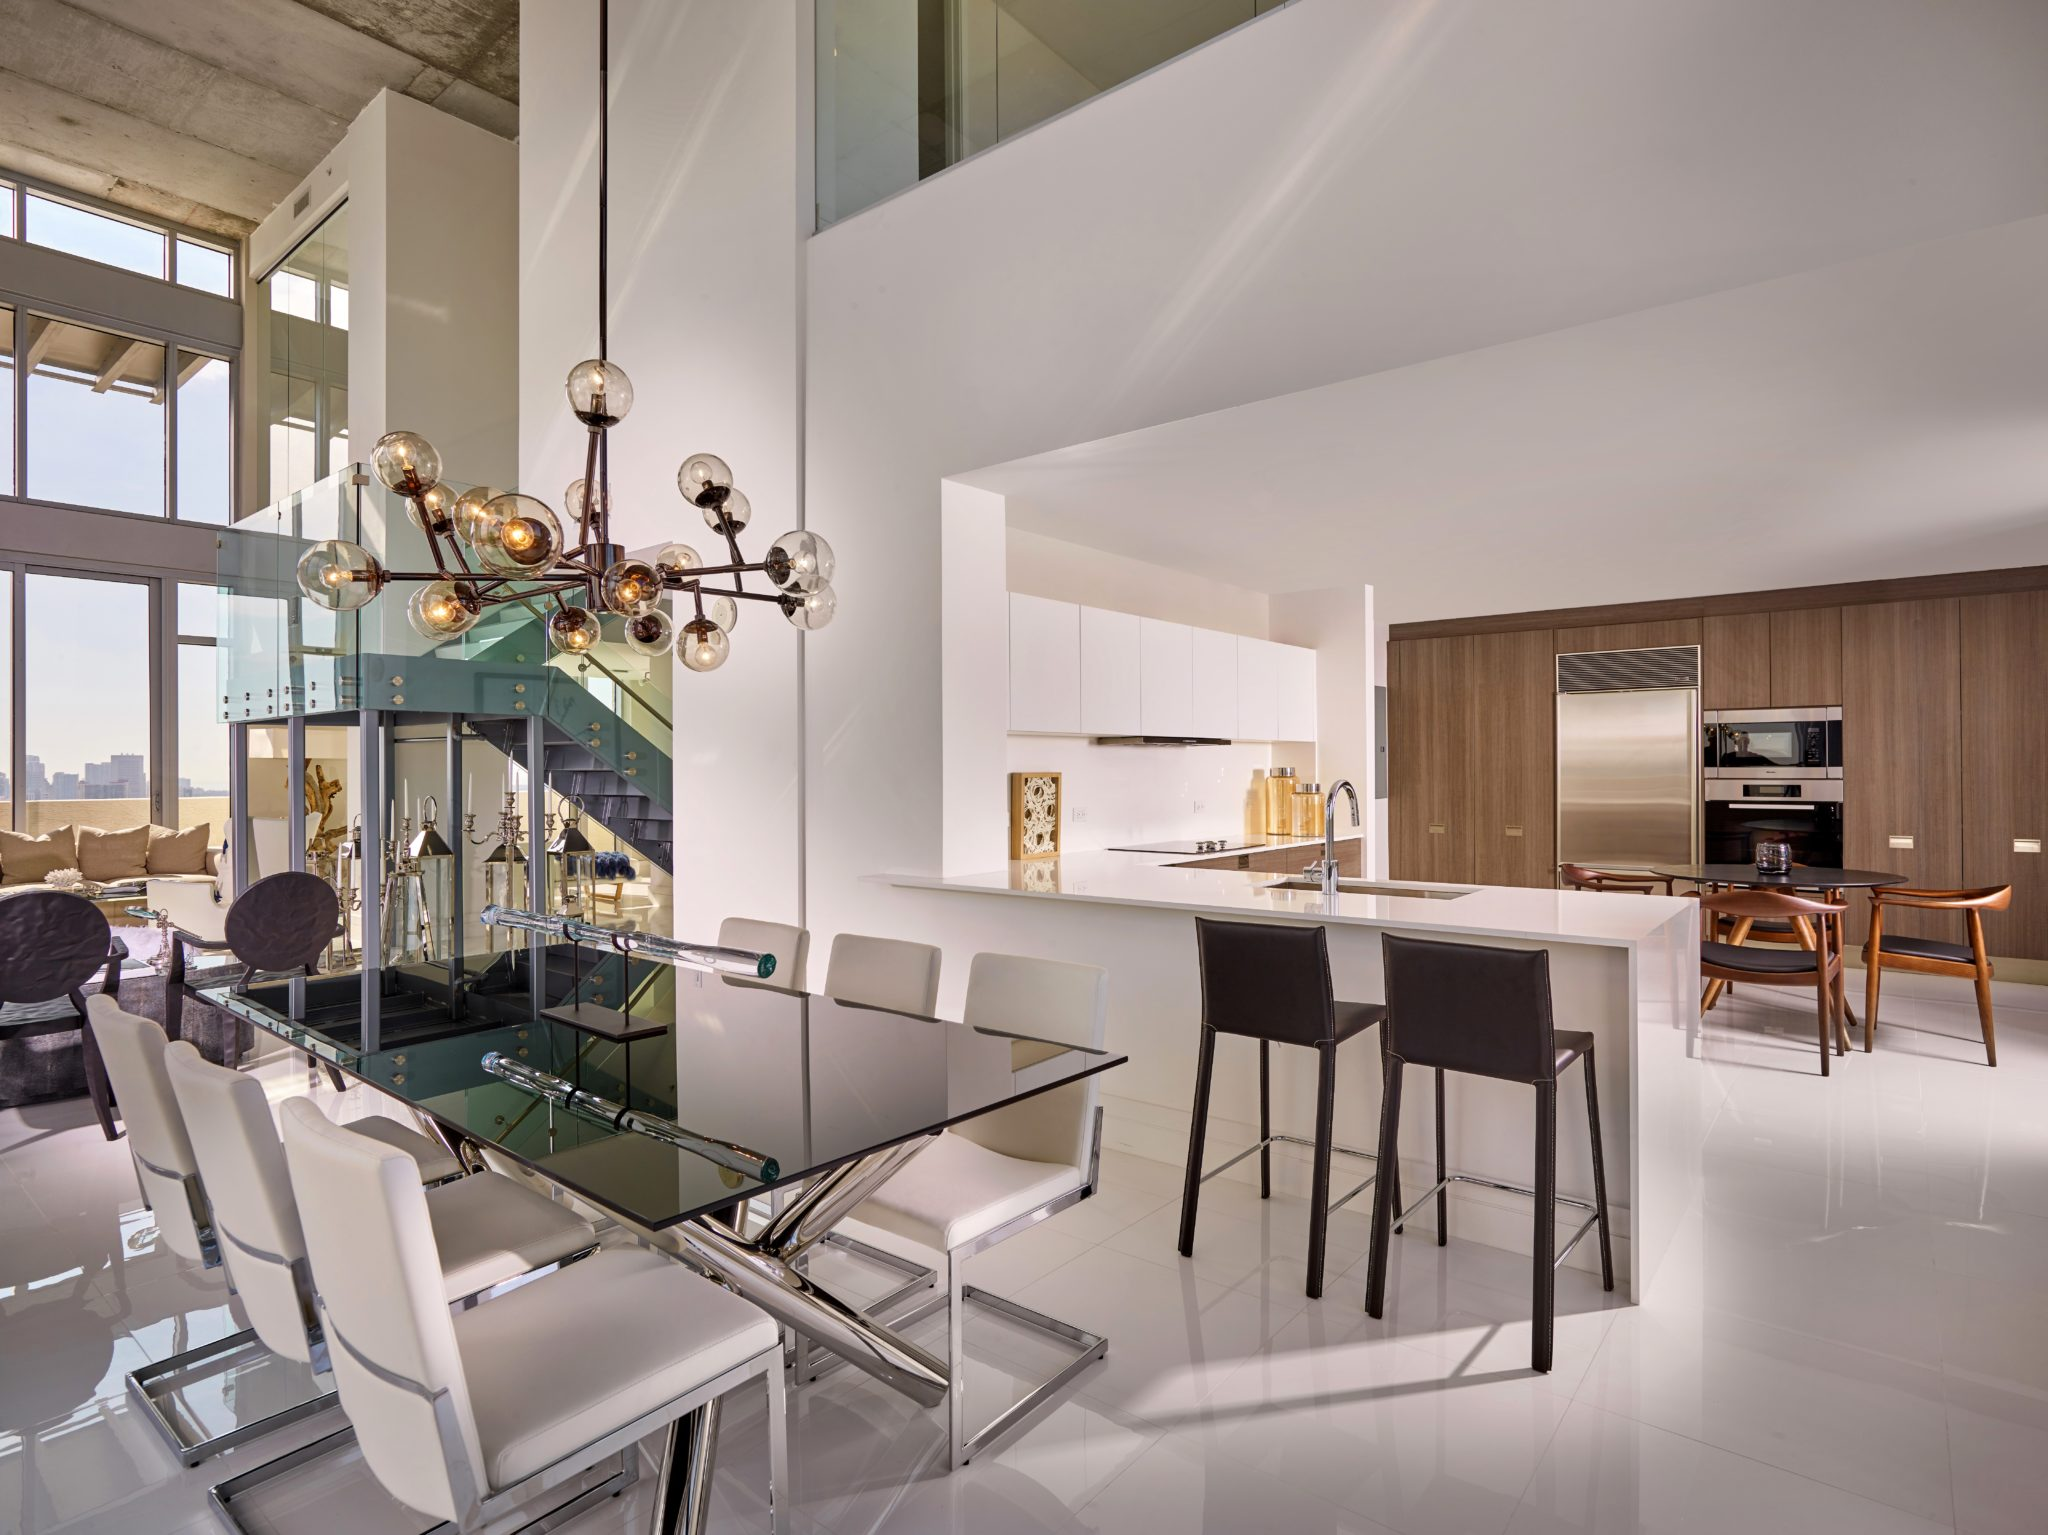 Midtown model unit PH6 - dining/kitchen space by RS3 DESIGNS